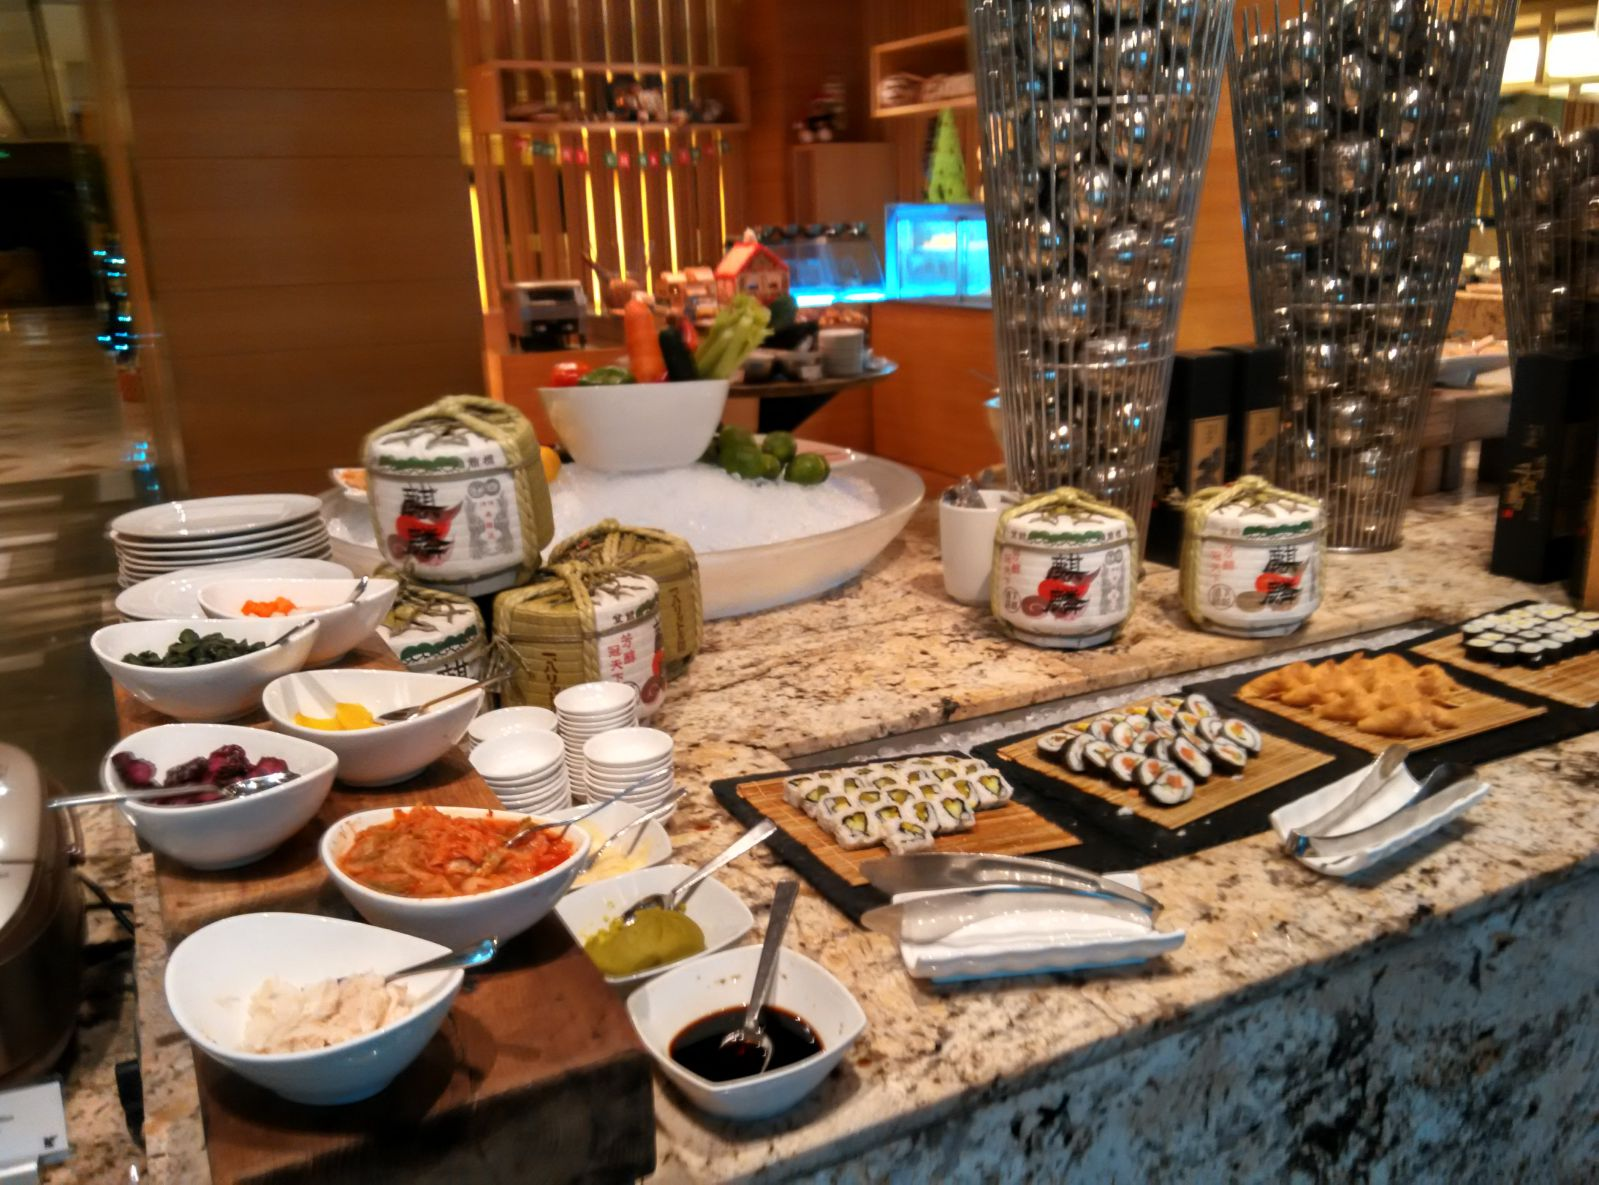 shenzhen-jw-marriott-breakfast-1